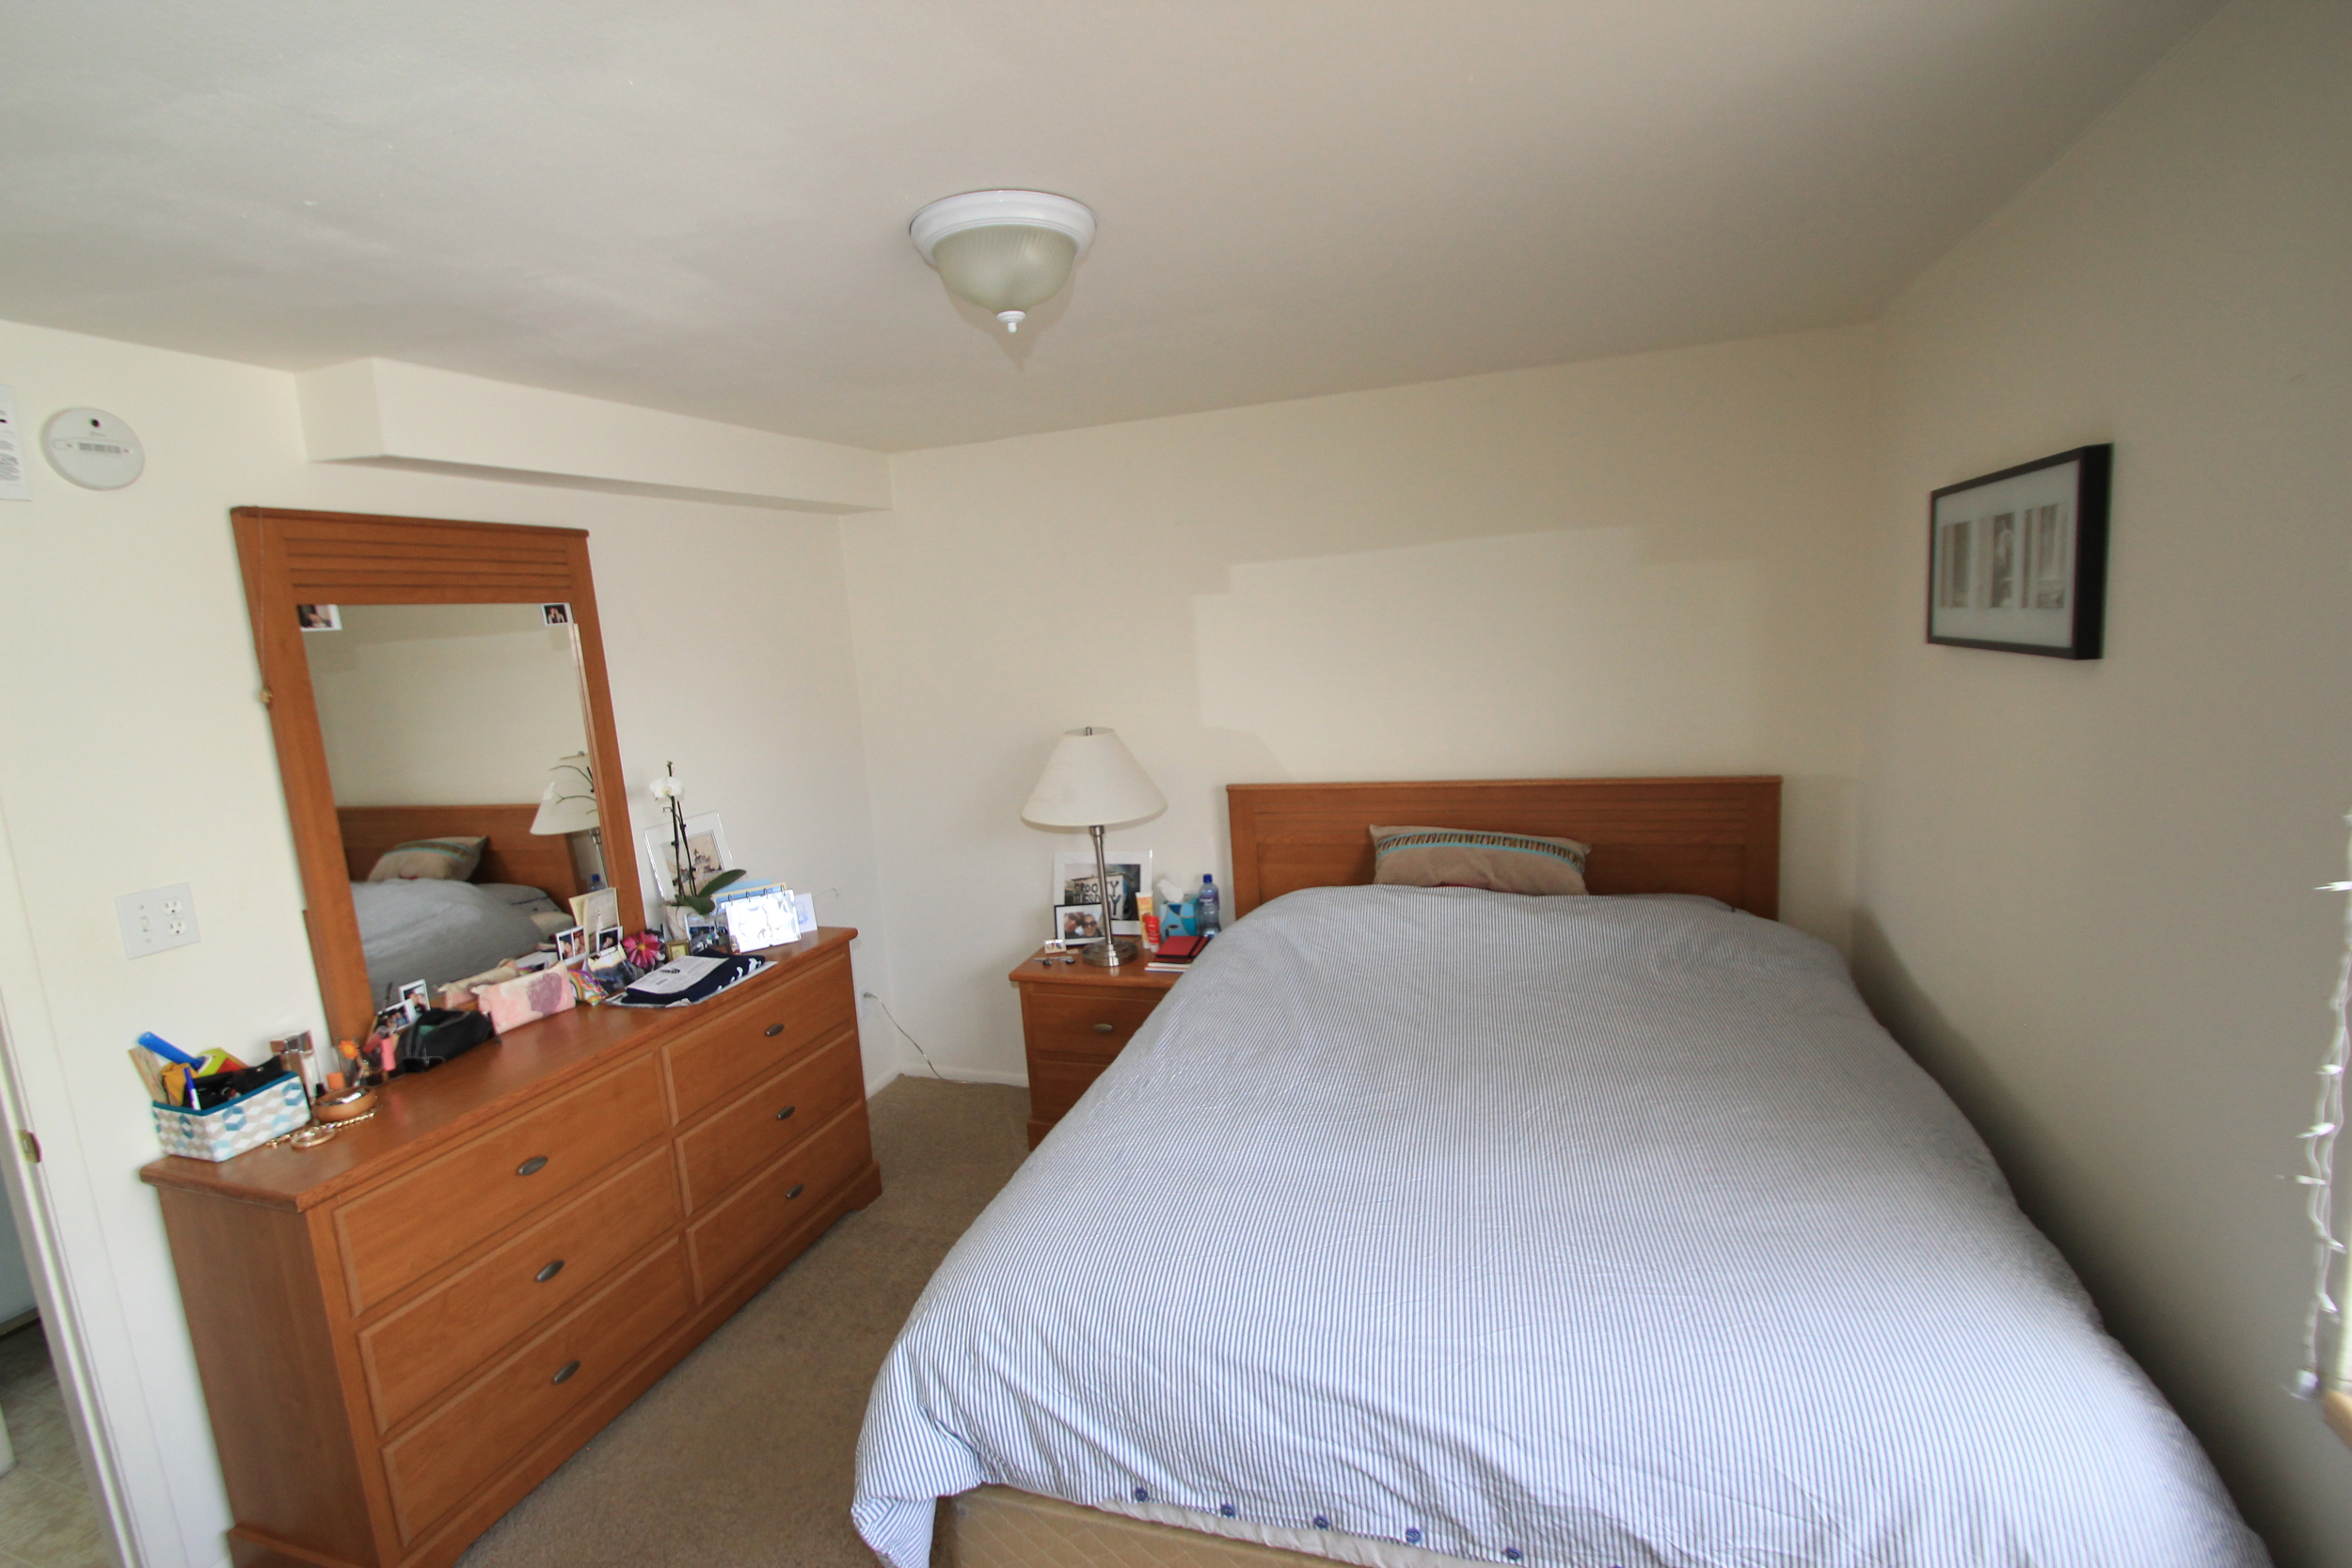 cc end unit bedroom 2.JPG